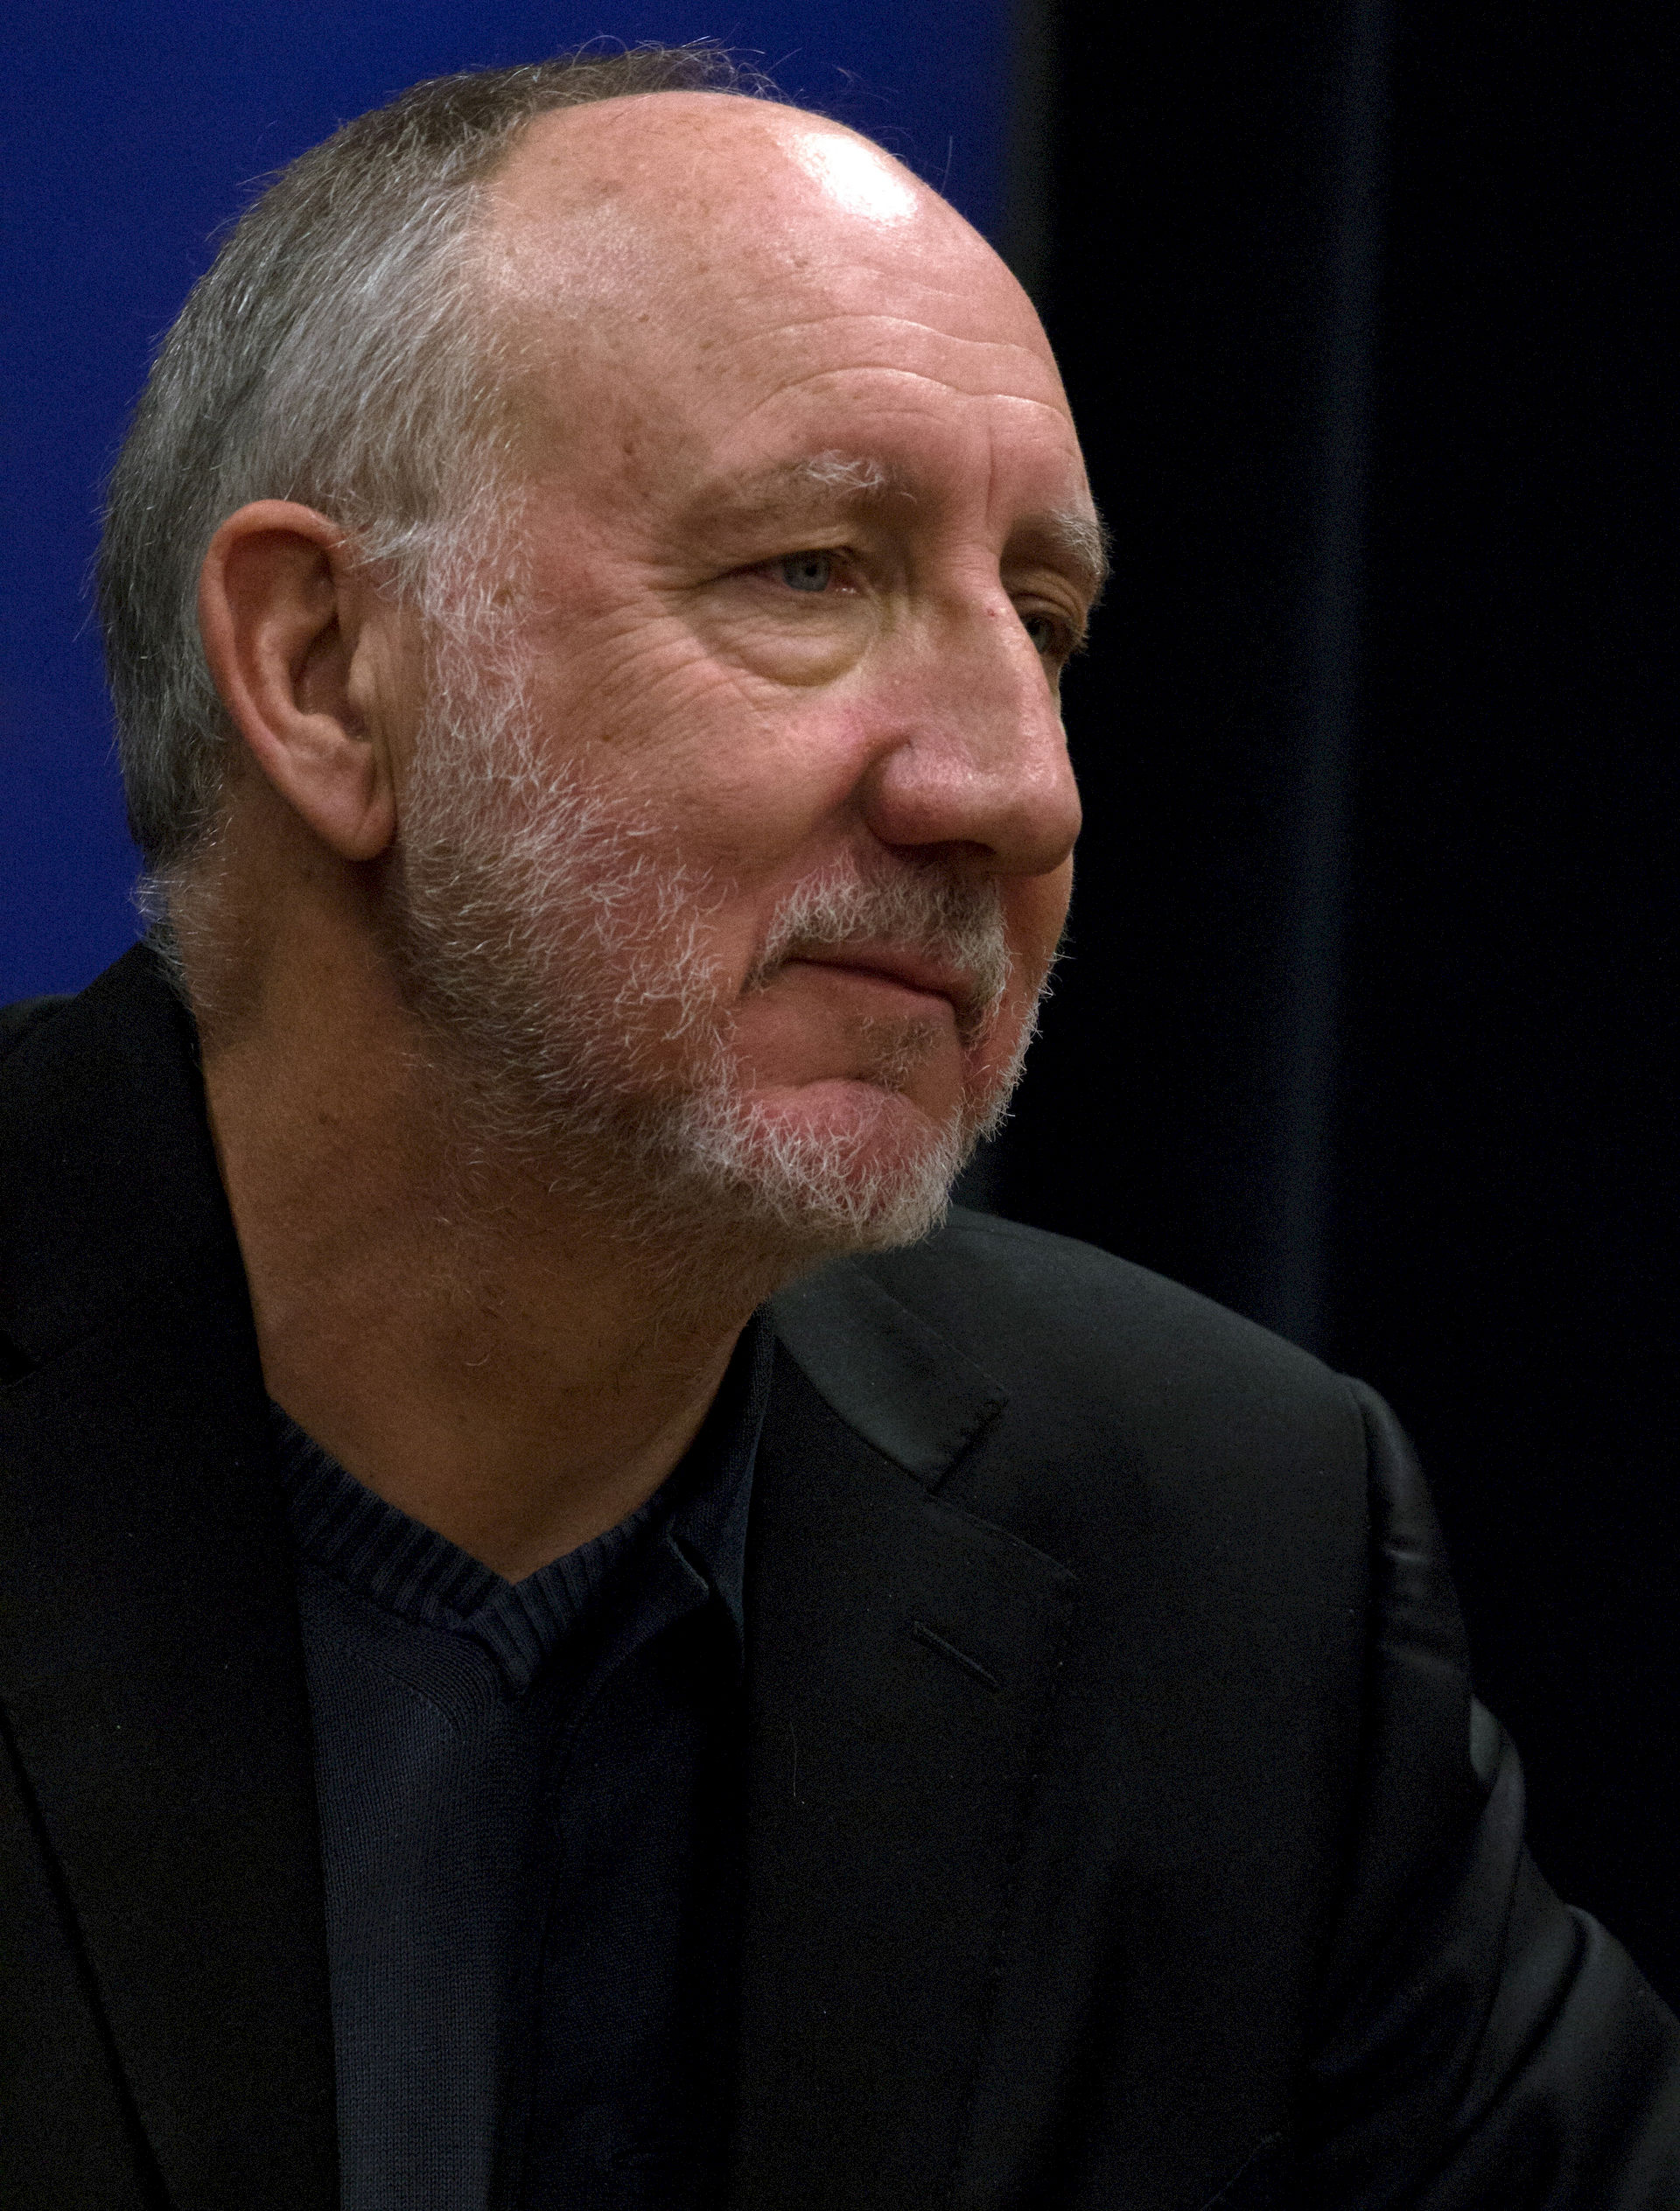 Photo of Pete Townshend: English rock guitarist, vocalist, songwriter and author